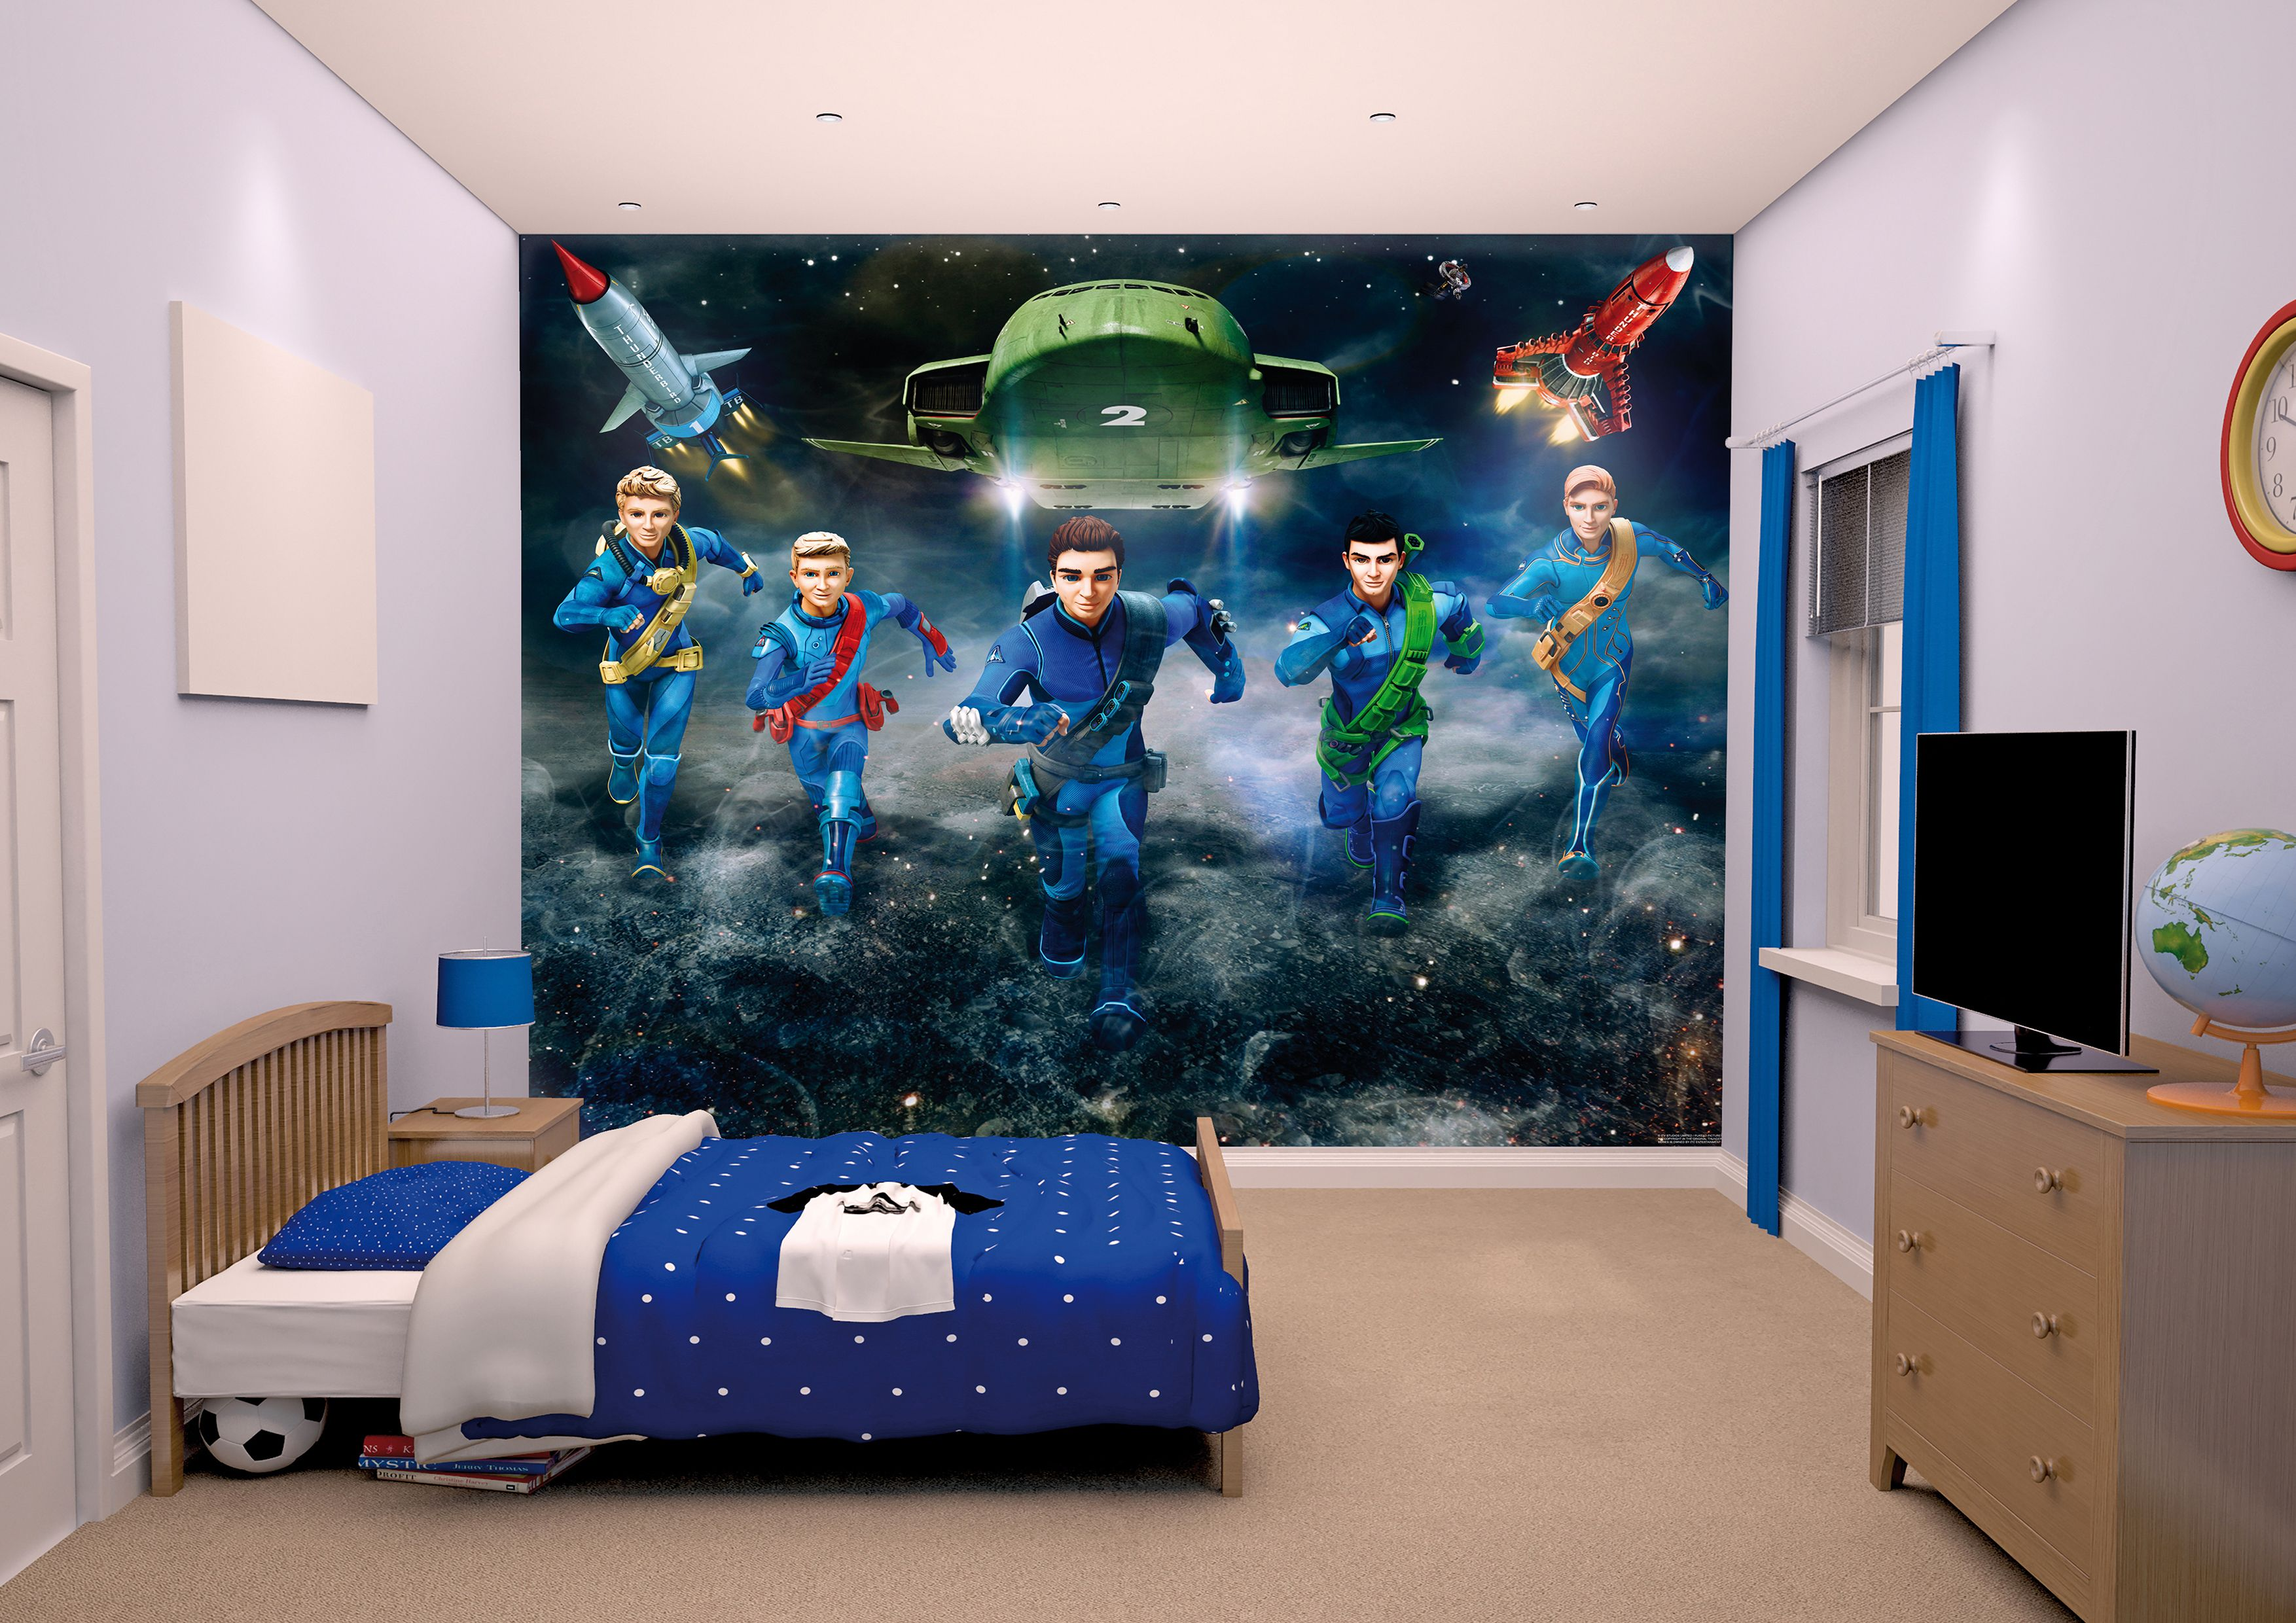 Cheap wall murals uk images home wall decoration ideas wall murals uk cheap choice image home wall decoration ideas wall murals uk cheap gallery home amipublicfo Gallery